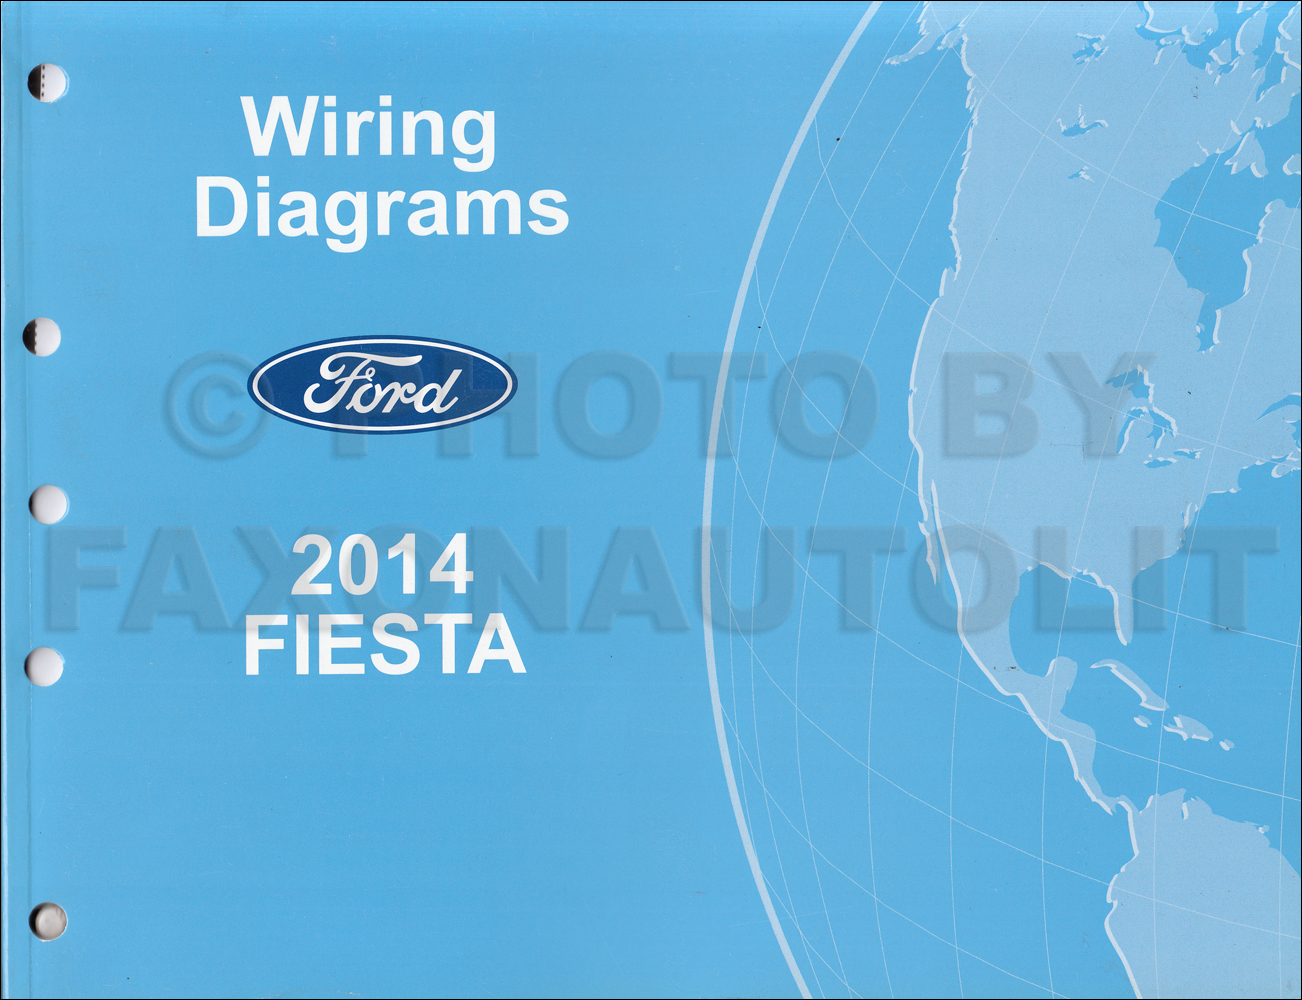 hight resolution of 2014 ford fiesta wiring diagram manual originalwire diagram for ford fiesta 2012 6